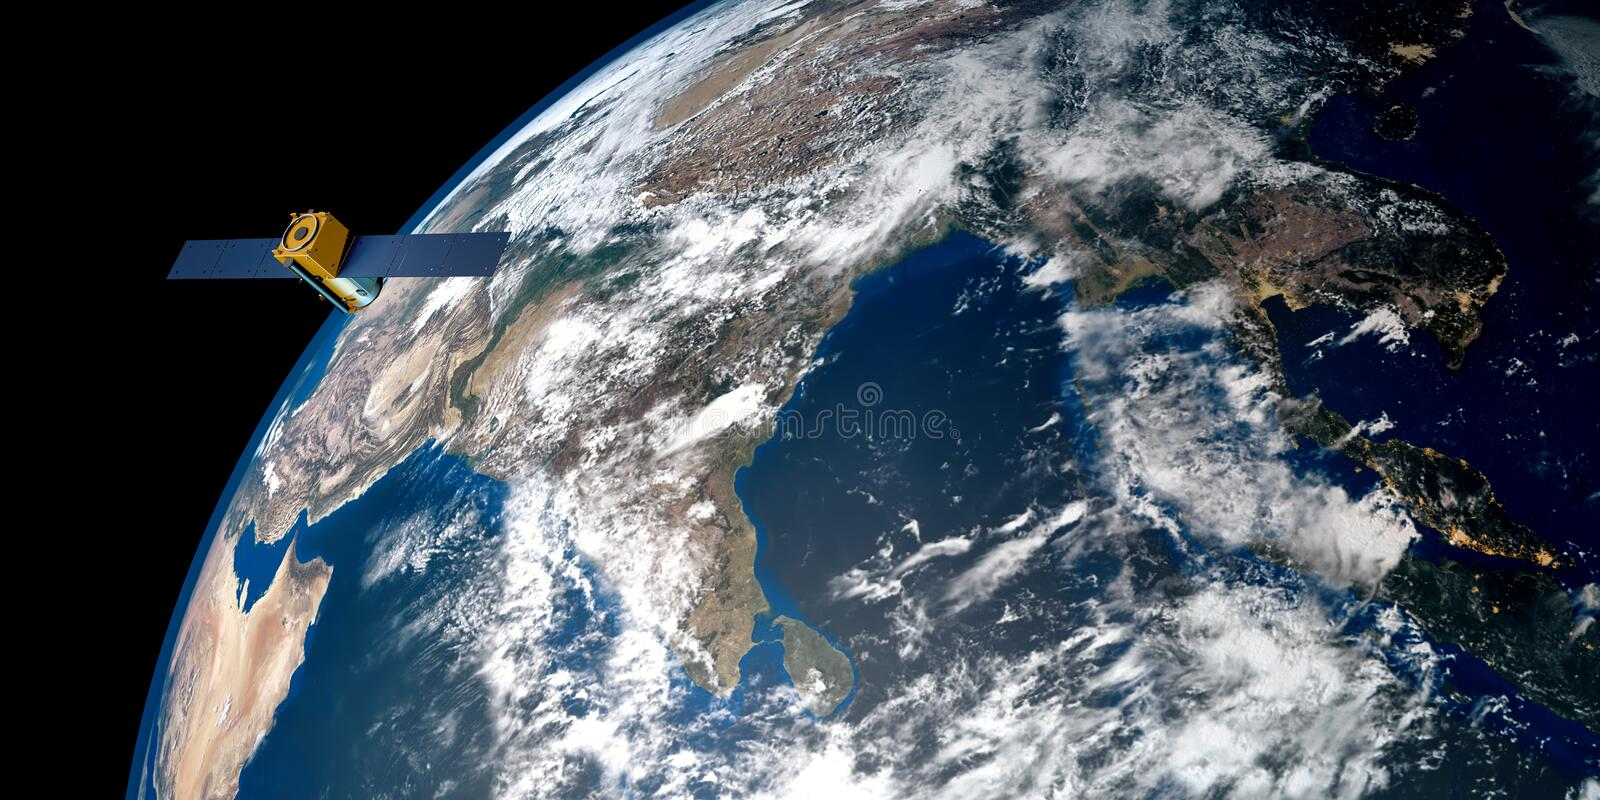 Extremely detailed and realistic high resolution 3D image of a satellite orbiting Earth. Shot from space. Elements of this image are furnished by NASA stock images